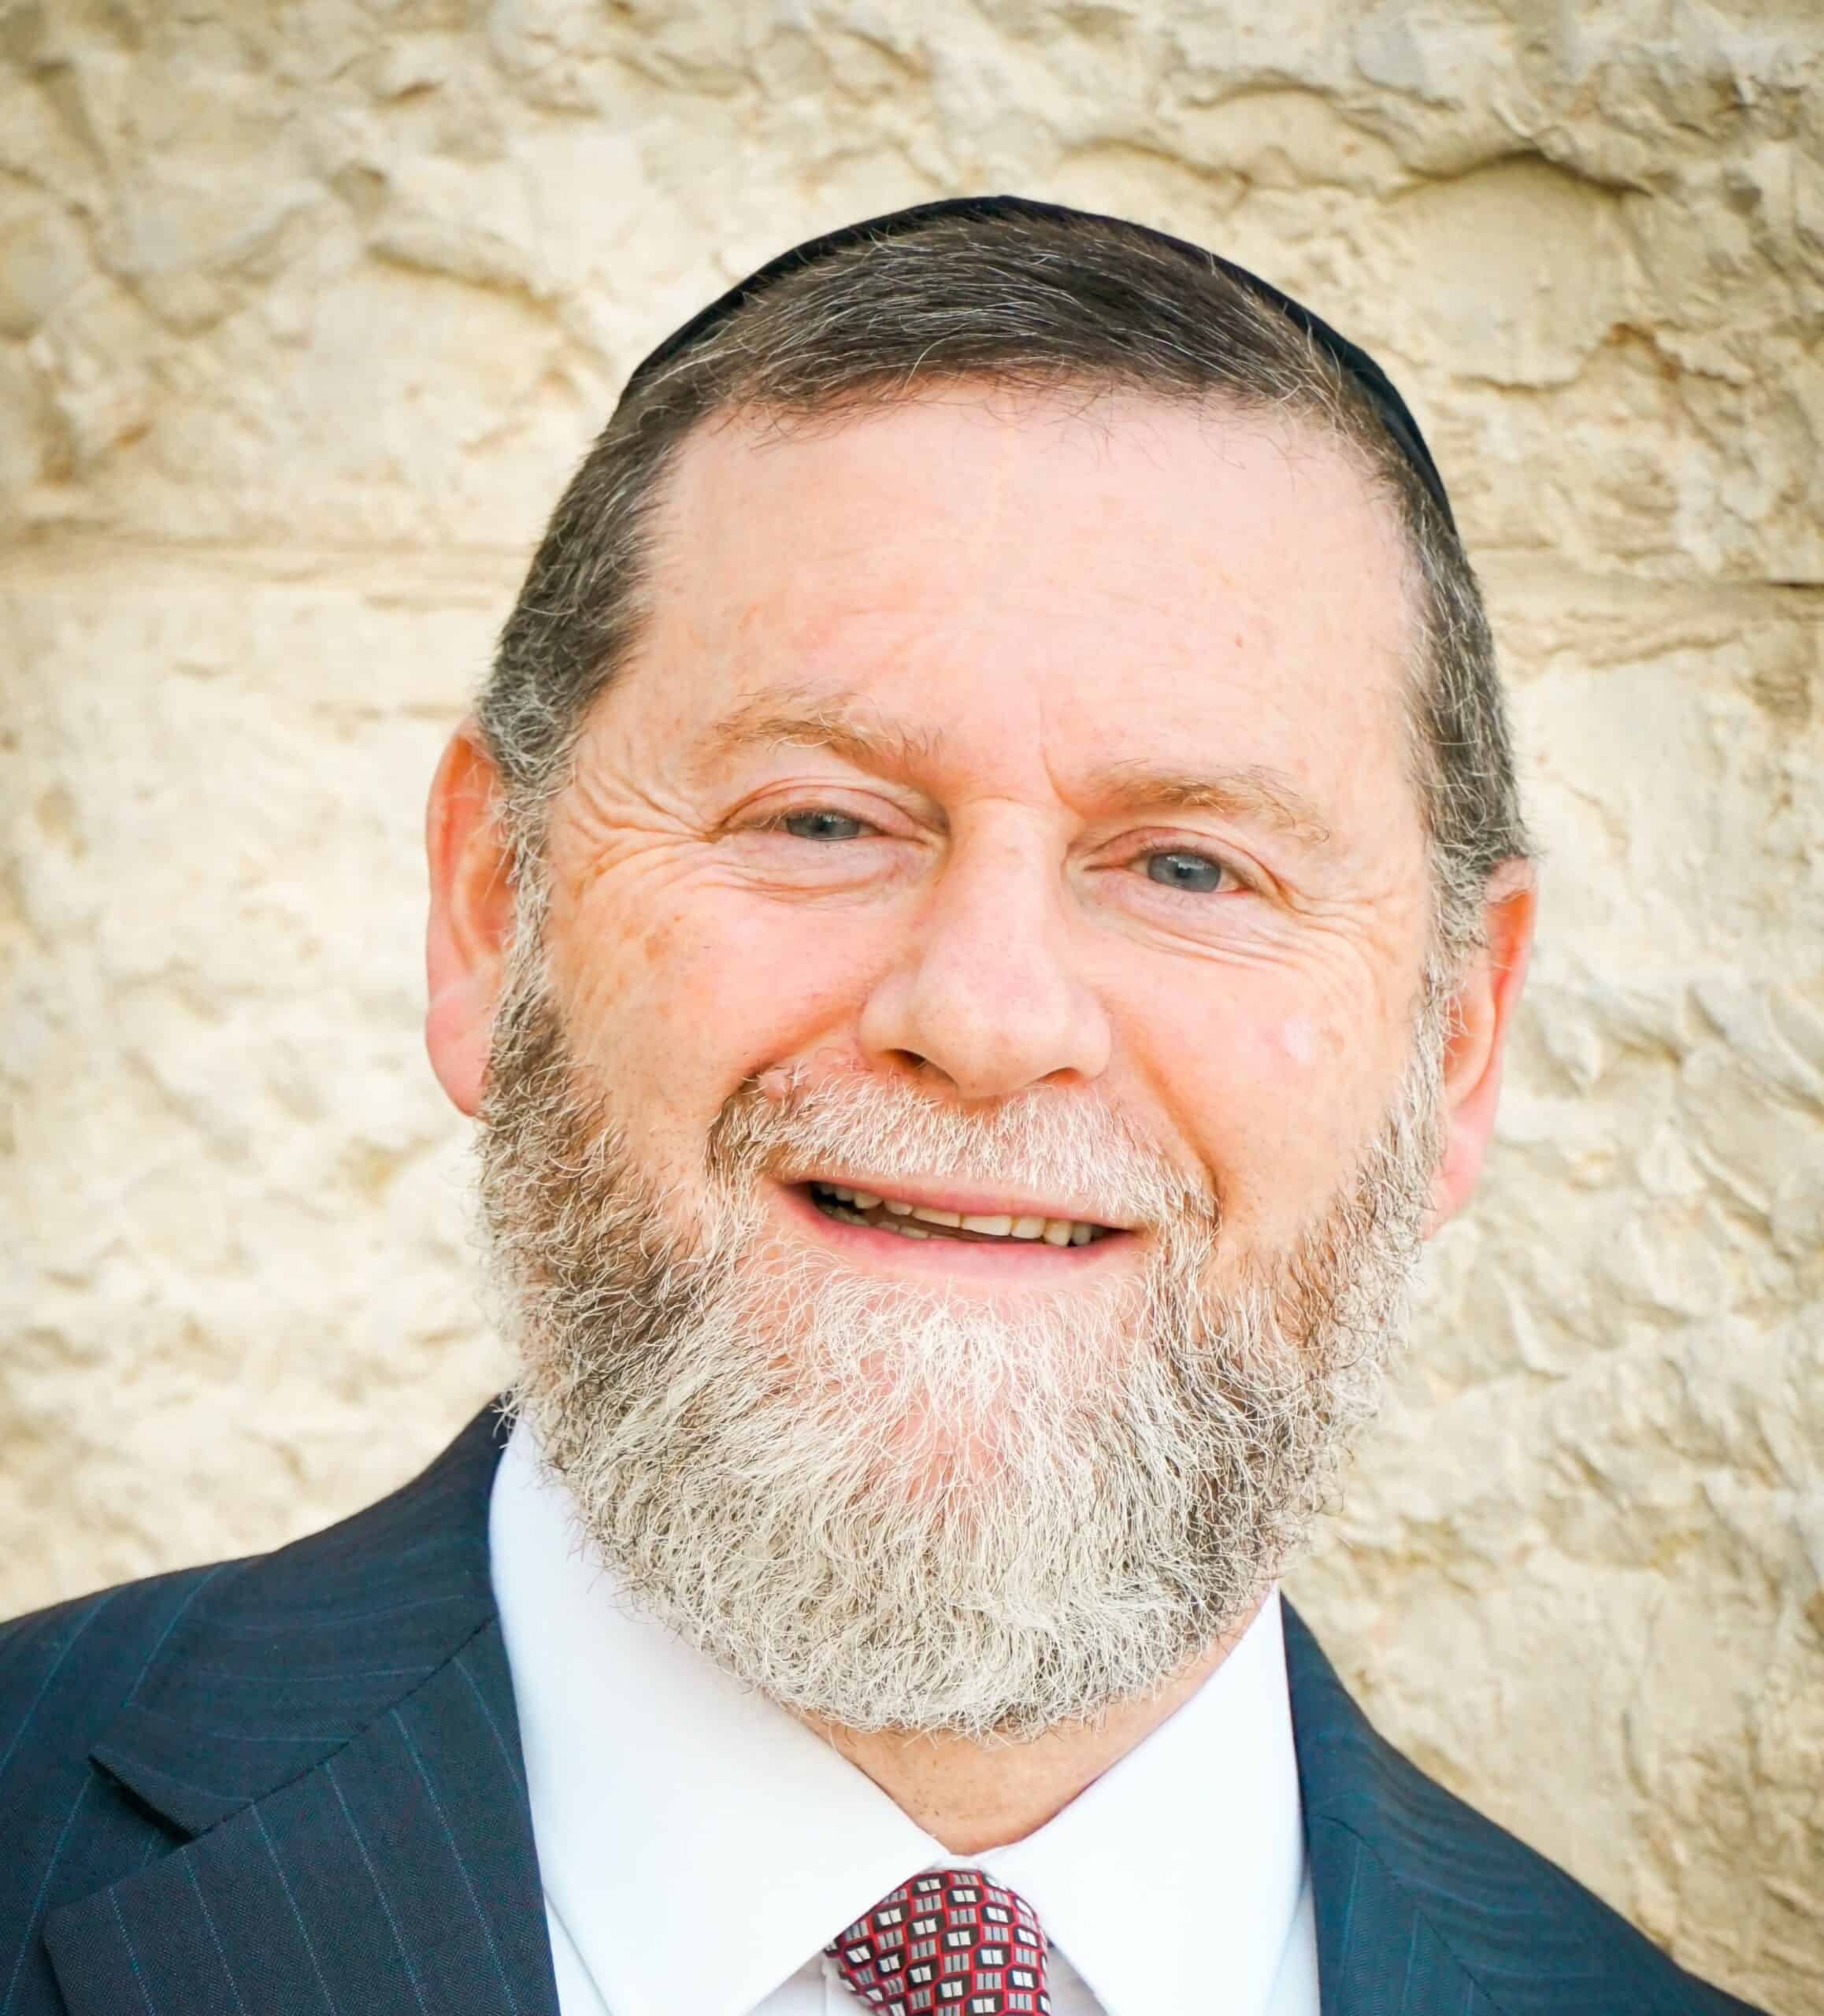 Rabbi Elazar Grunberger